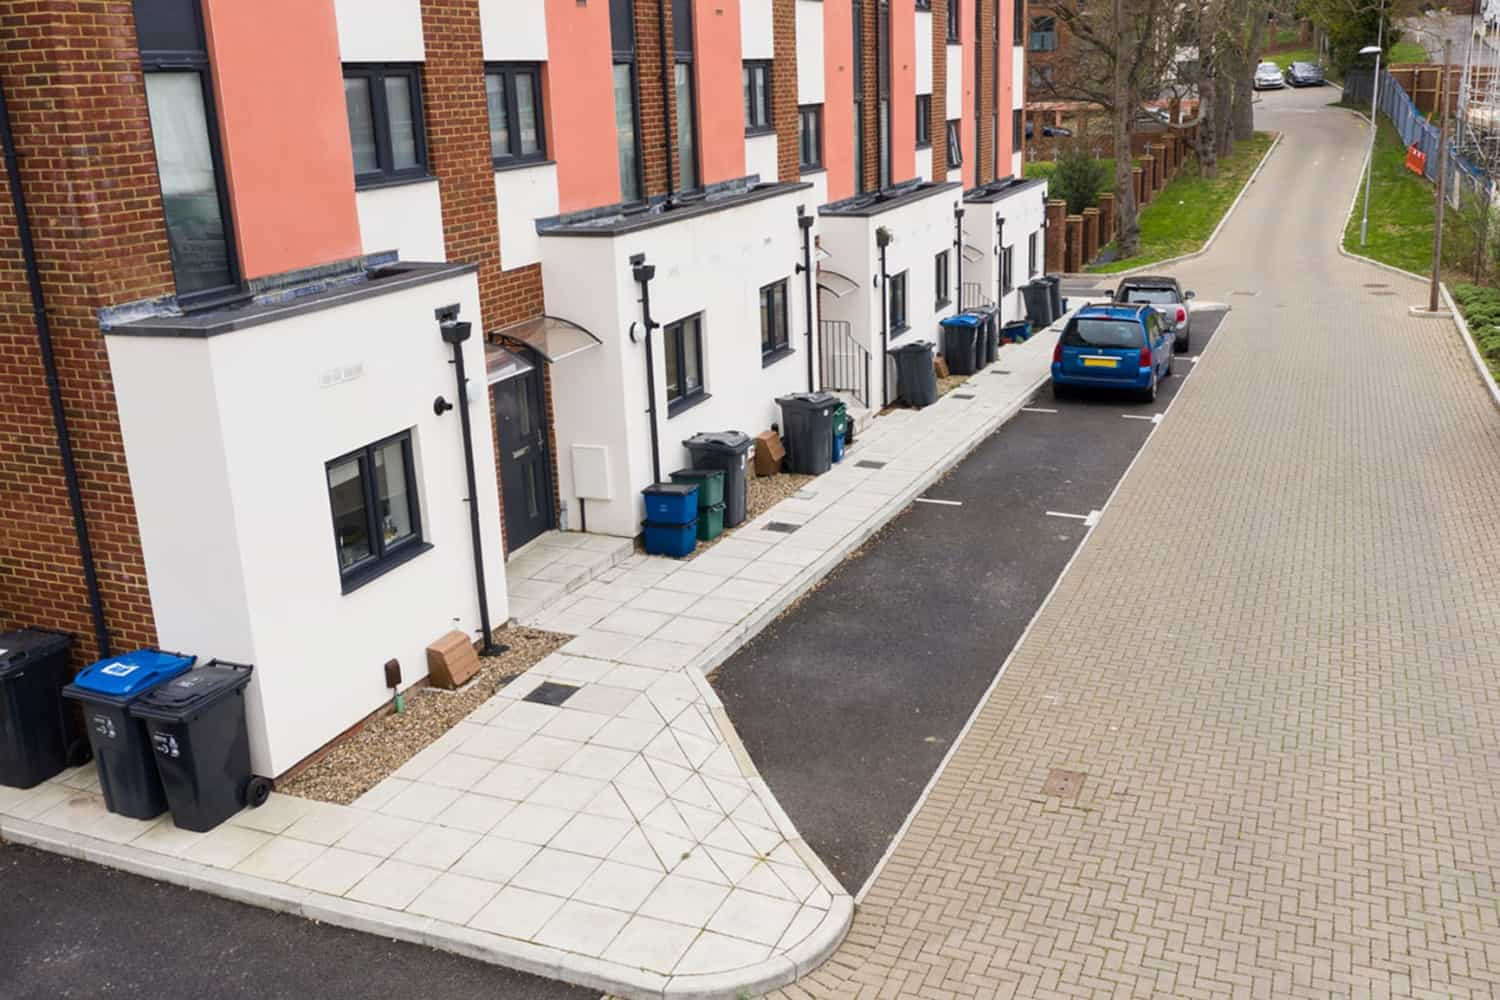 Paved road and tarmac parking area